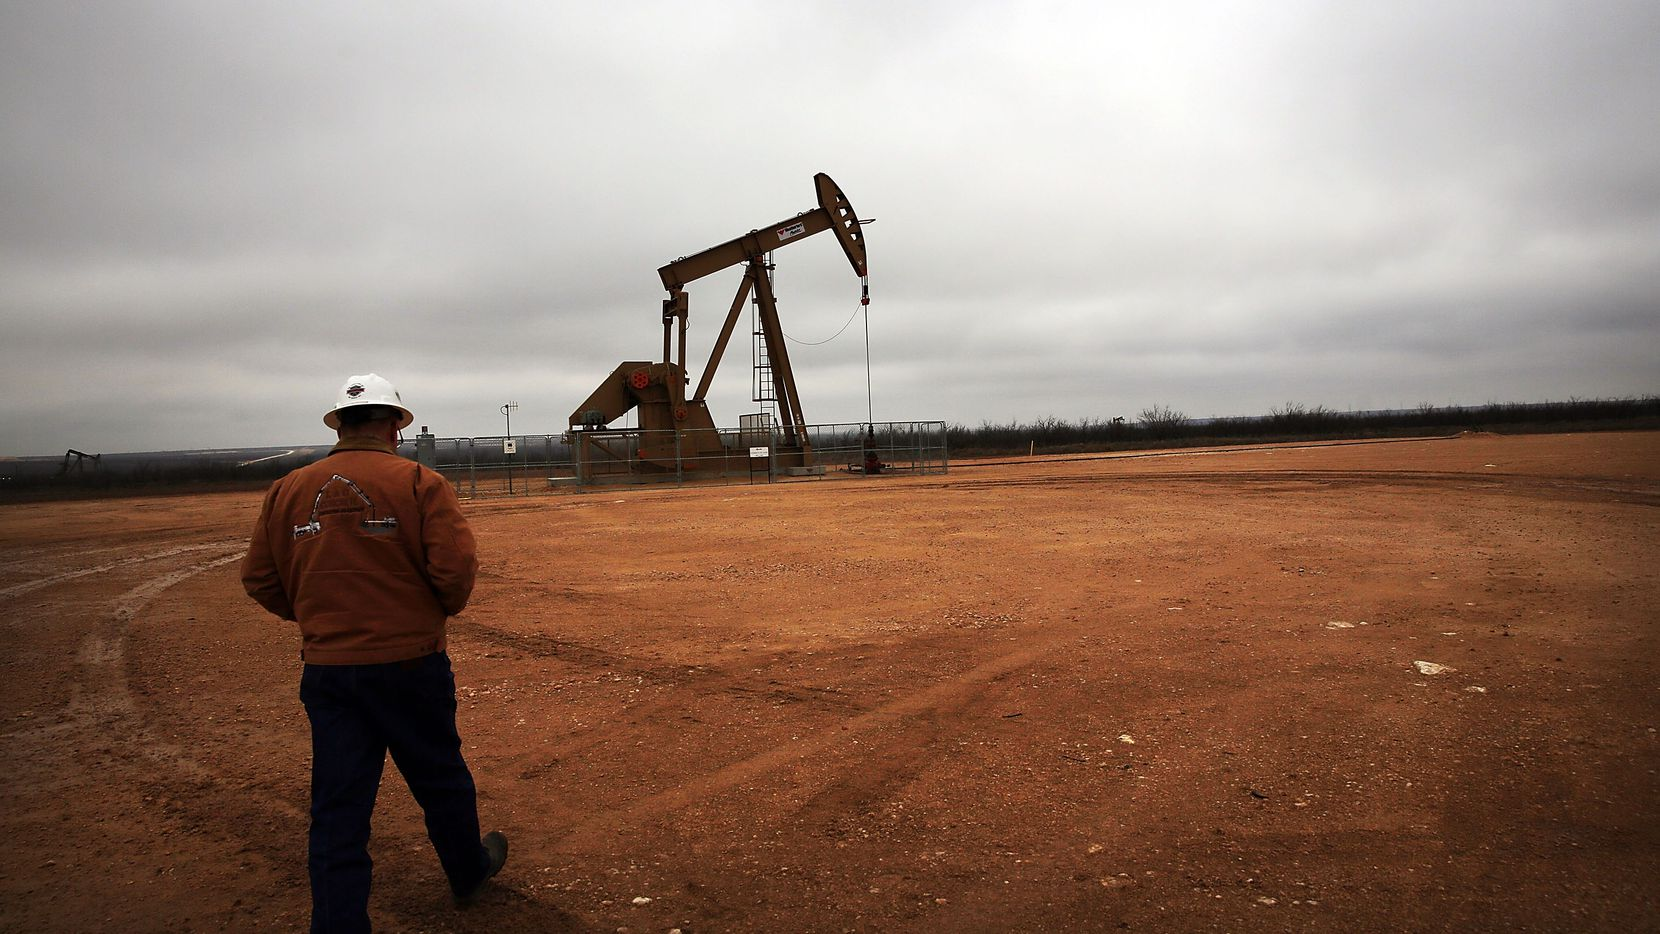 Exxon Mobil has bought leases for about 250,000 acres in the Permian Basin and plans to ramp up investment and production in shale gas plays.  (Spencer Platt/Getty Images)